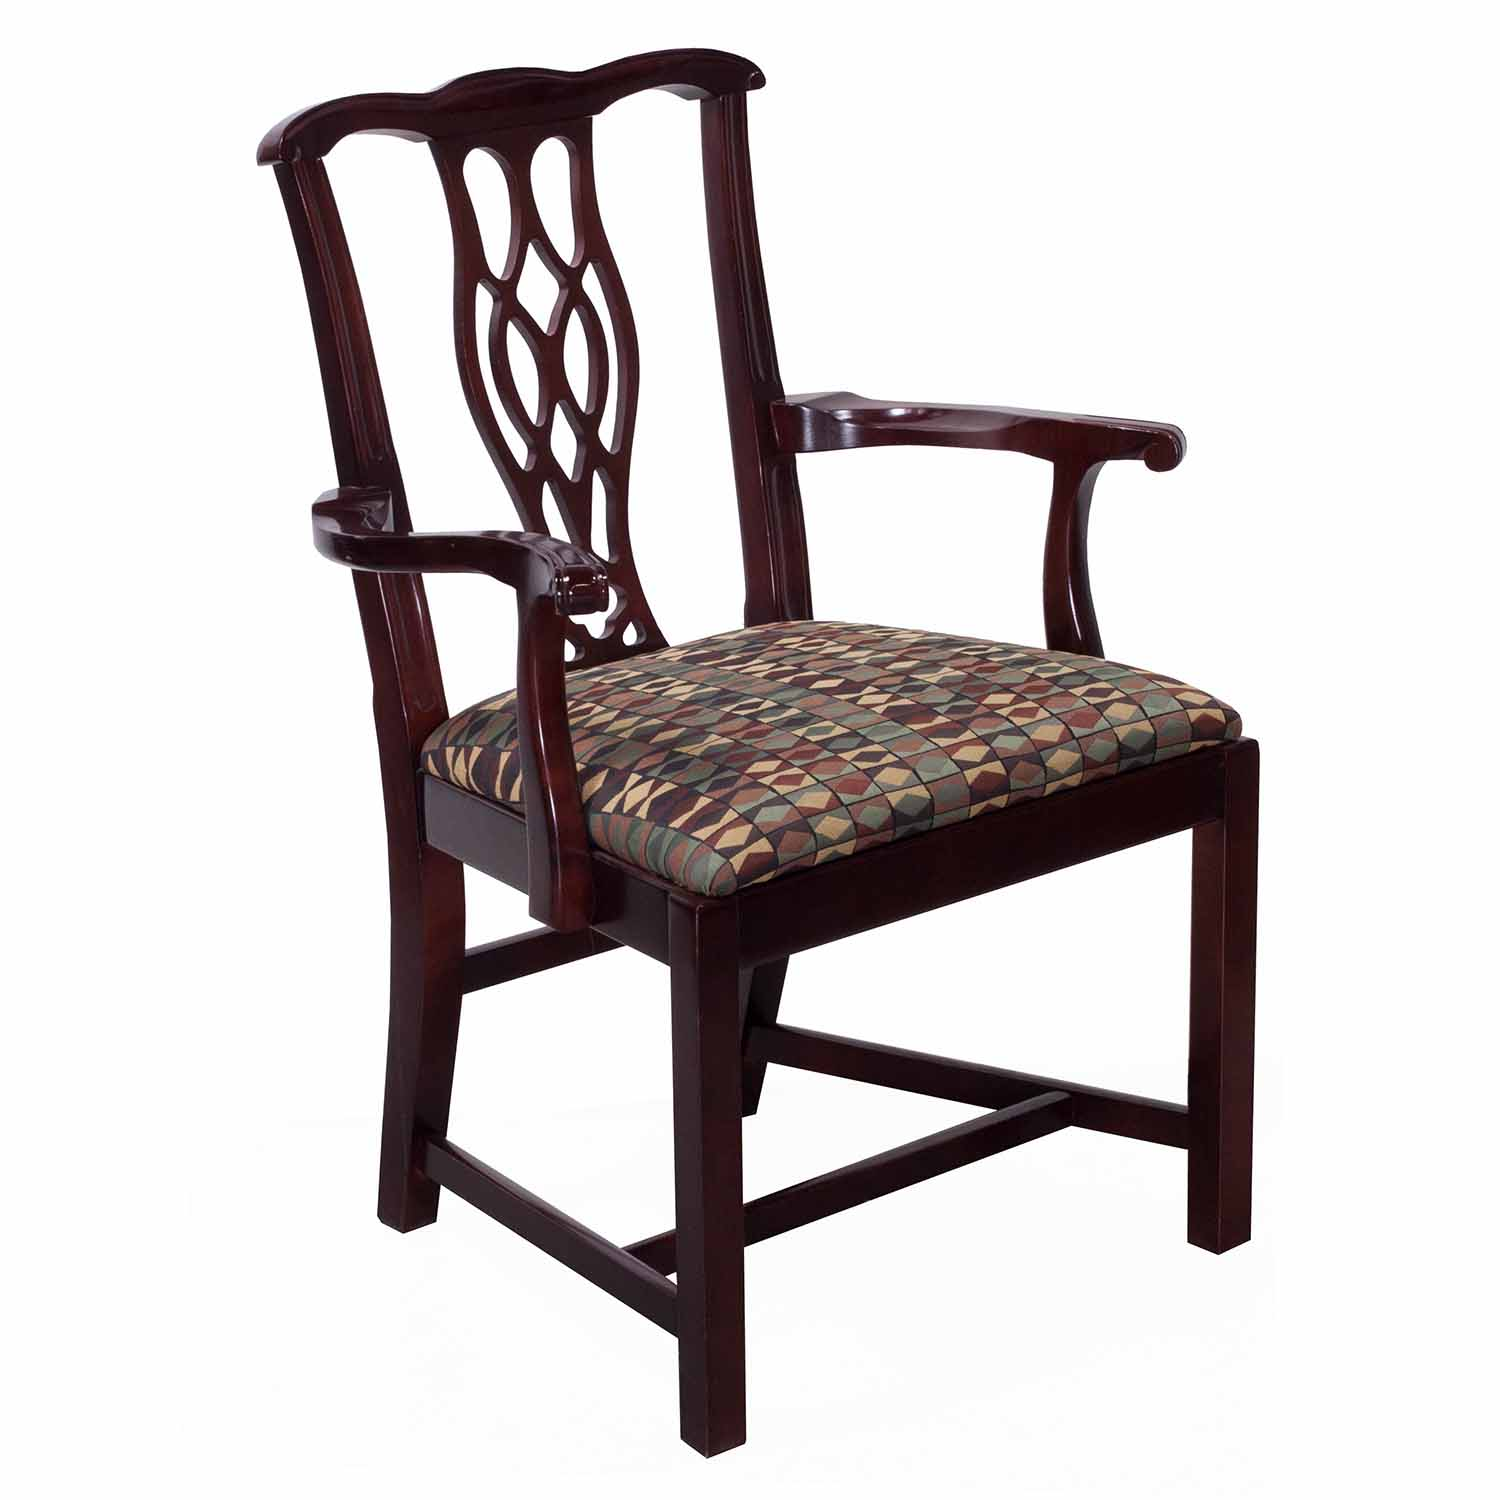 Wood Arm Chair Bernhardt Eaton Square Used Wooden Arm Chair Mocha